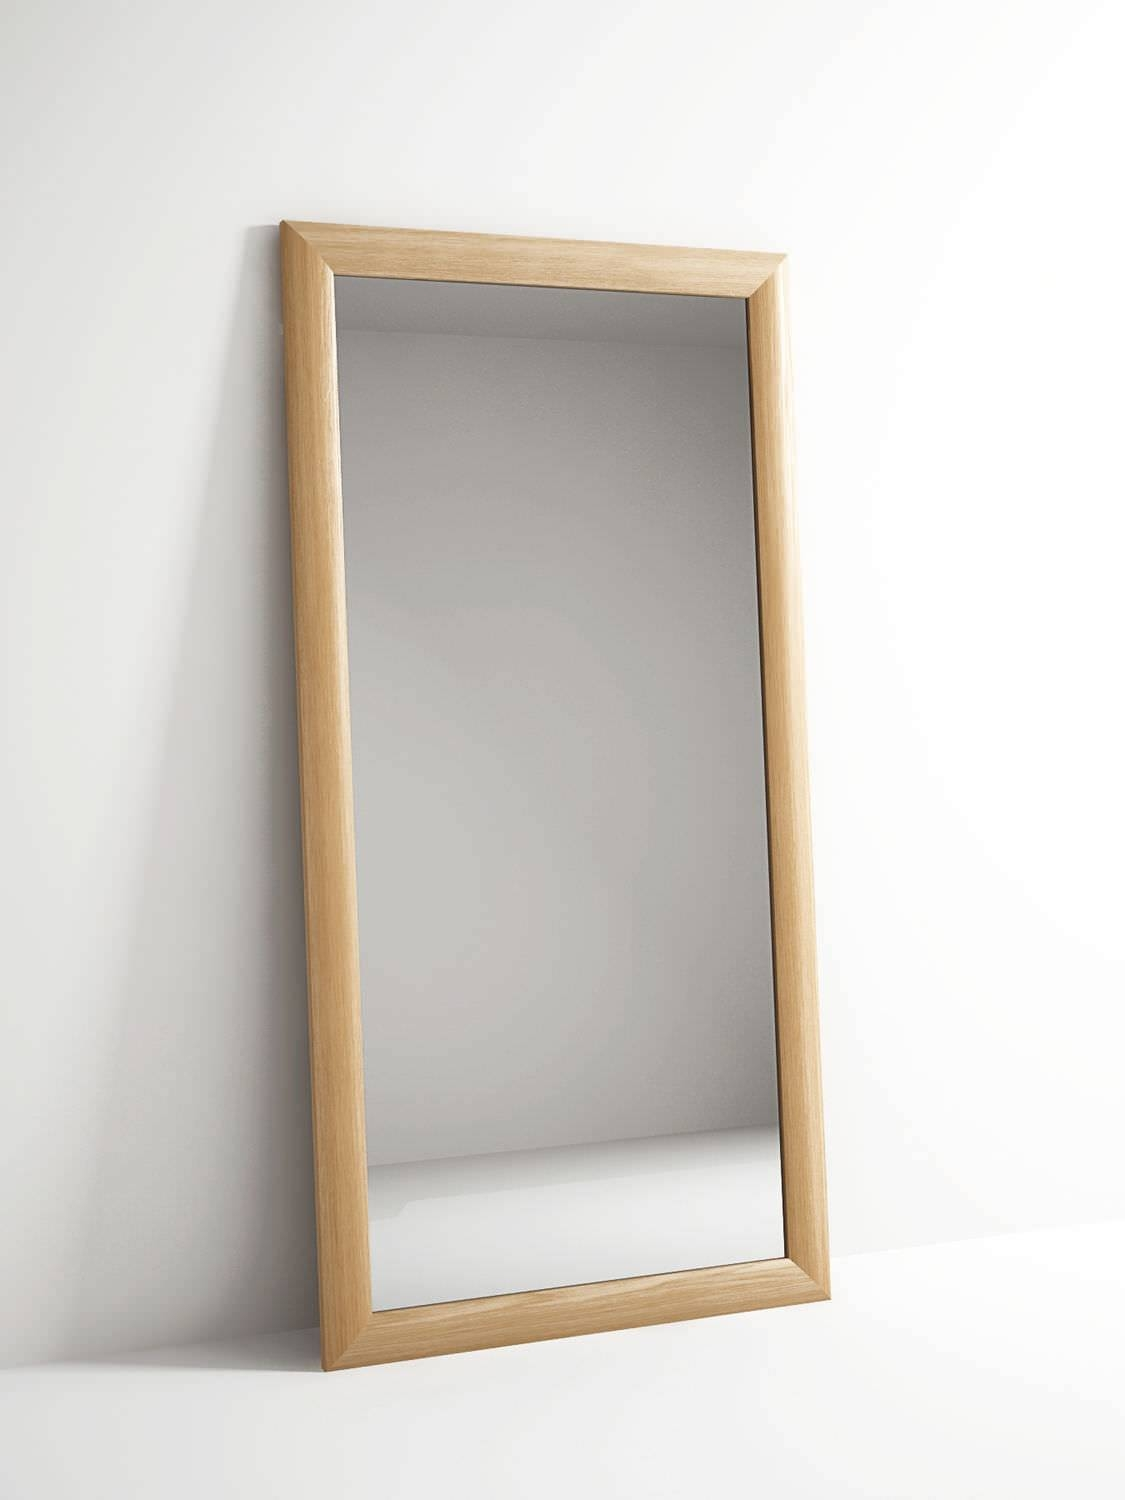 Free-Standing Mirror / Contemporary / Rectangular / Oak - Vi40 intended for Long Free Standing Mirrors (Image 11 of 25)